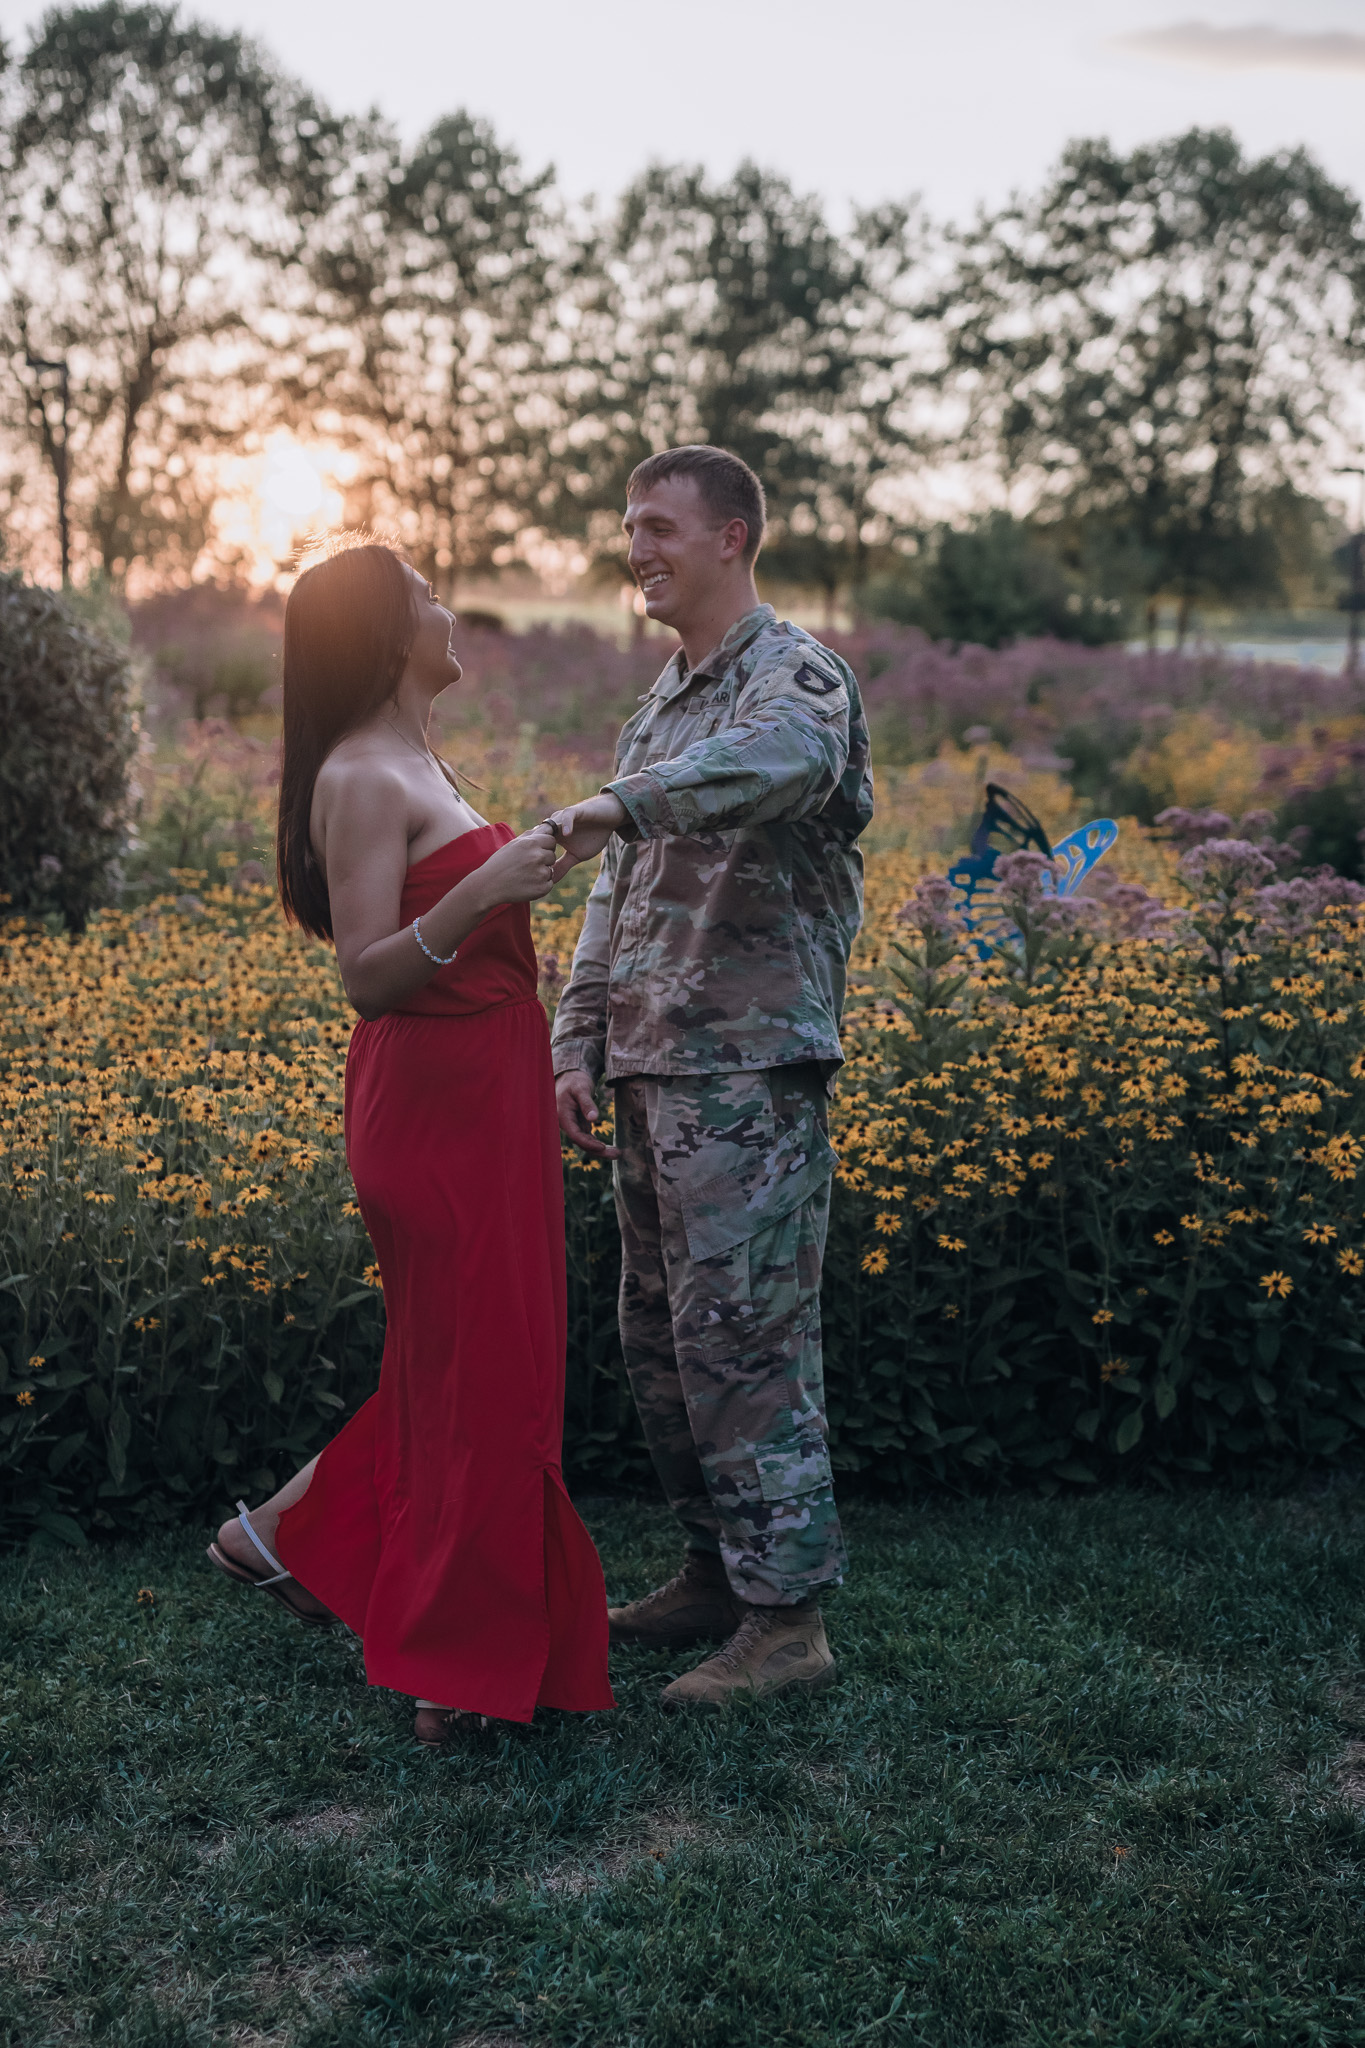 couple dancing in flower field at sunset